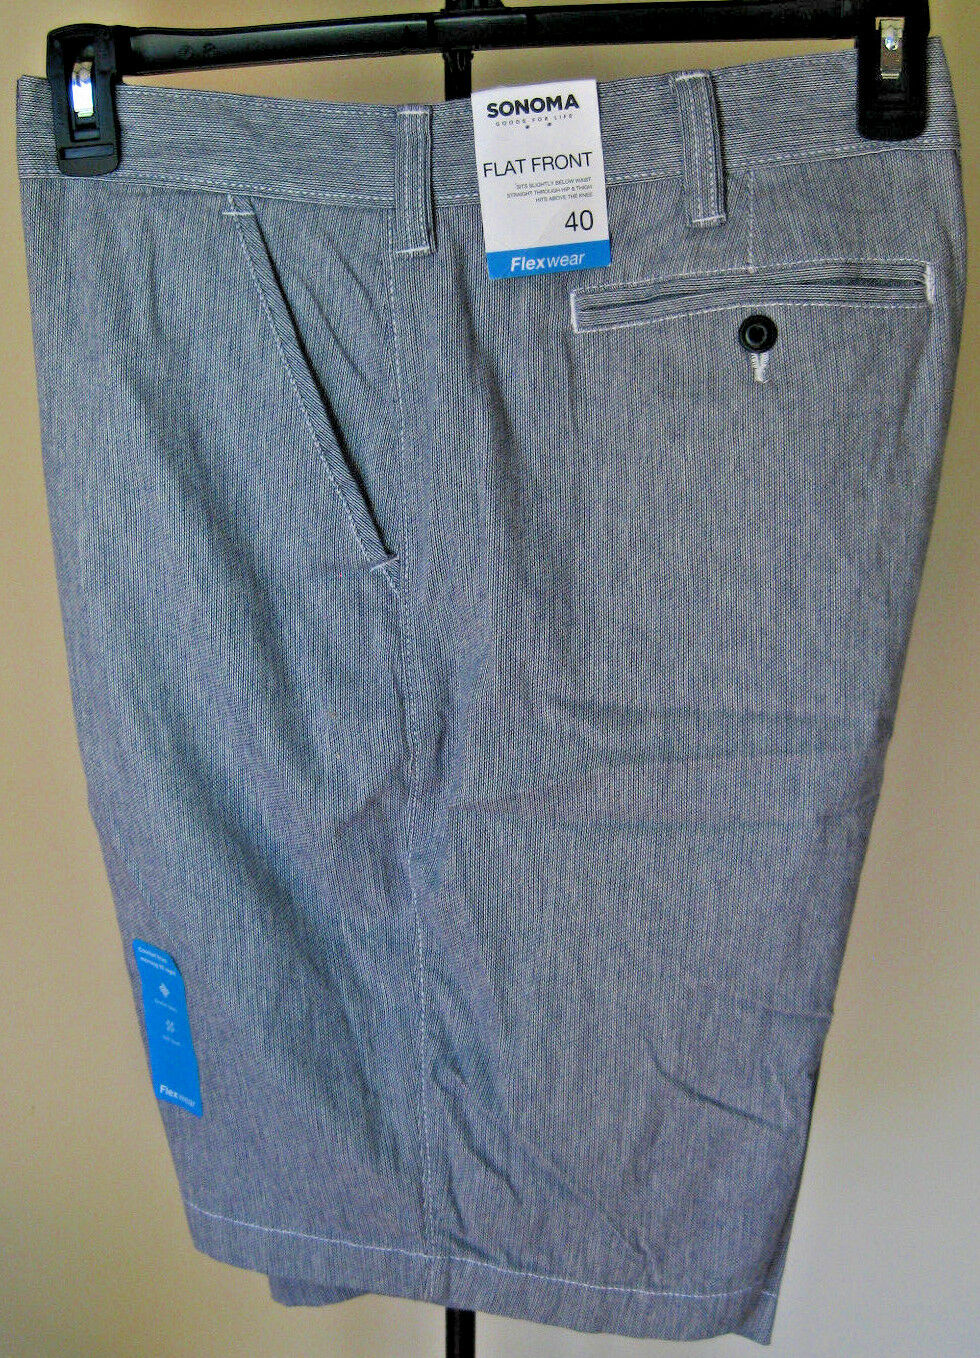 b59282233cbf NWT Men s SONOMA Flexwear Shorts 40W Light bluee Stretch Fabric Lightweight  New